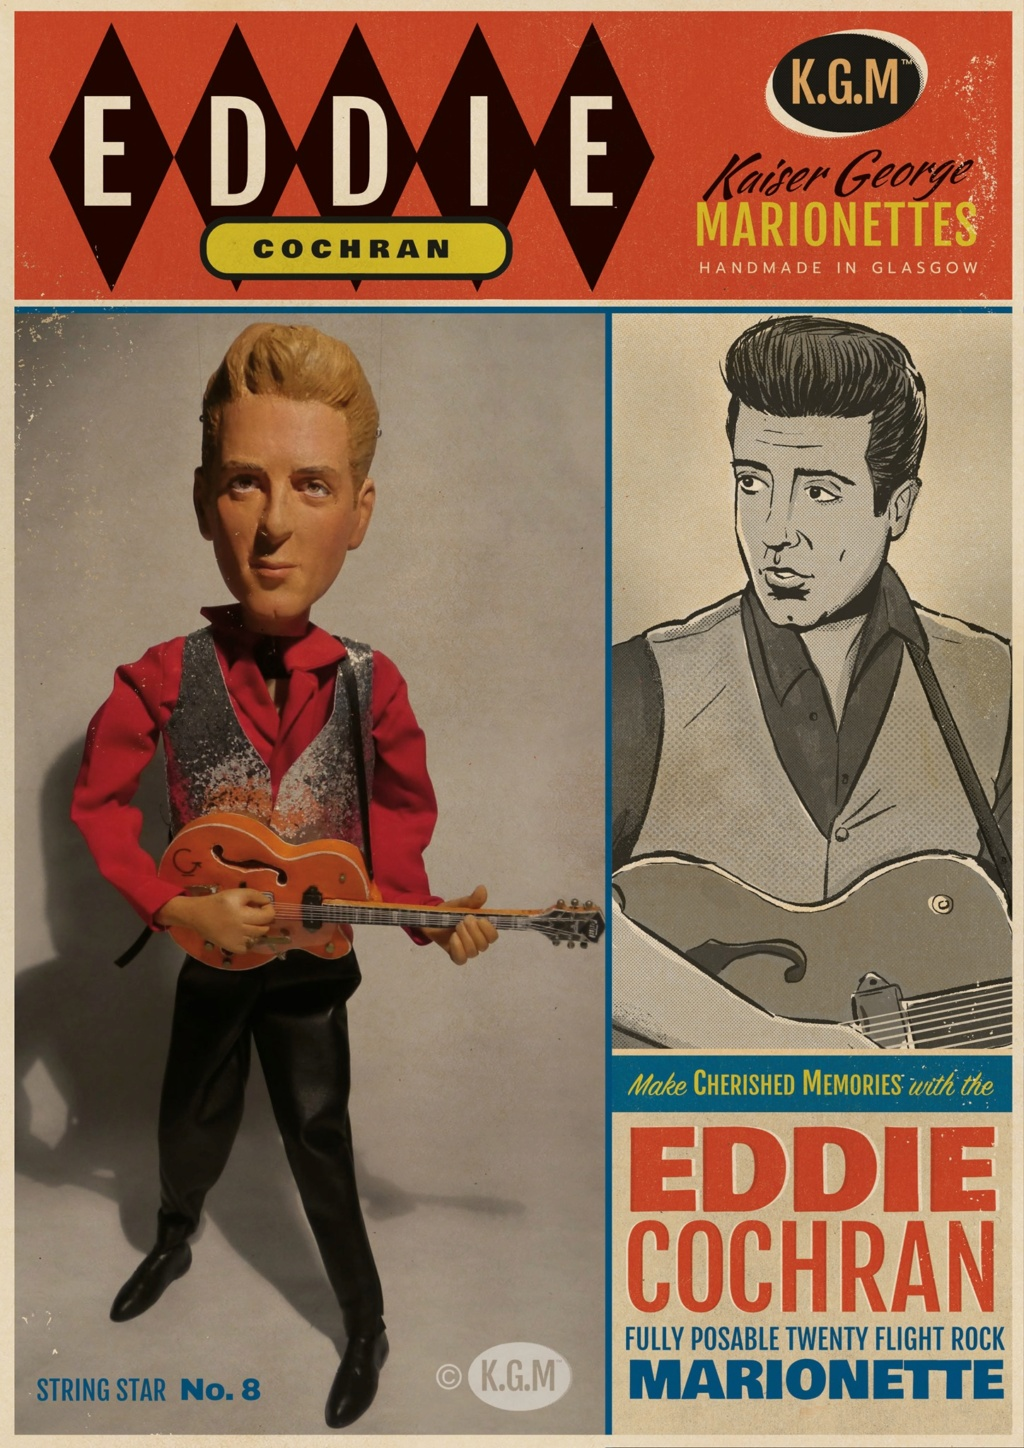 50s Rock 'n' roll legends in marionettes - KGM - Kaiser George Marionettes - 12058010